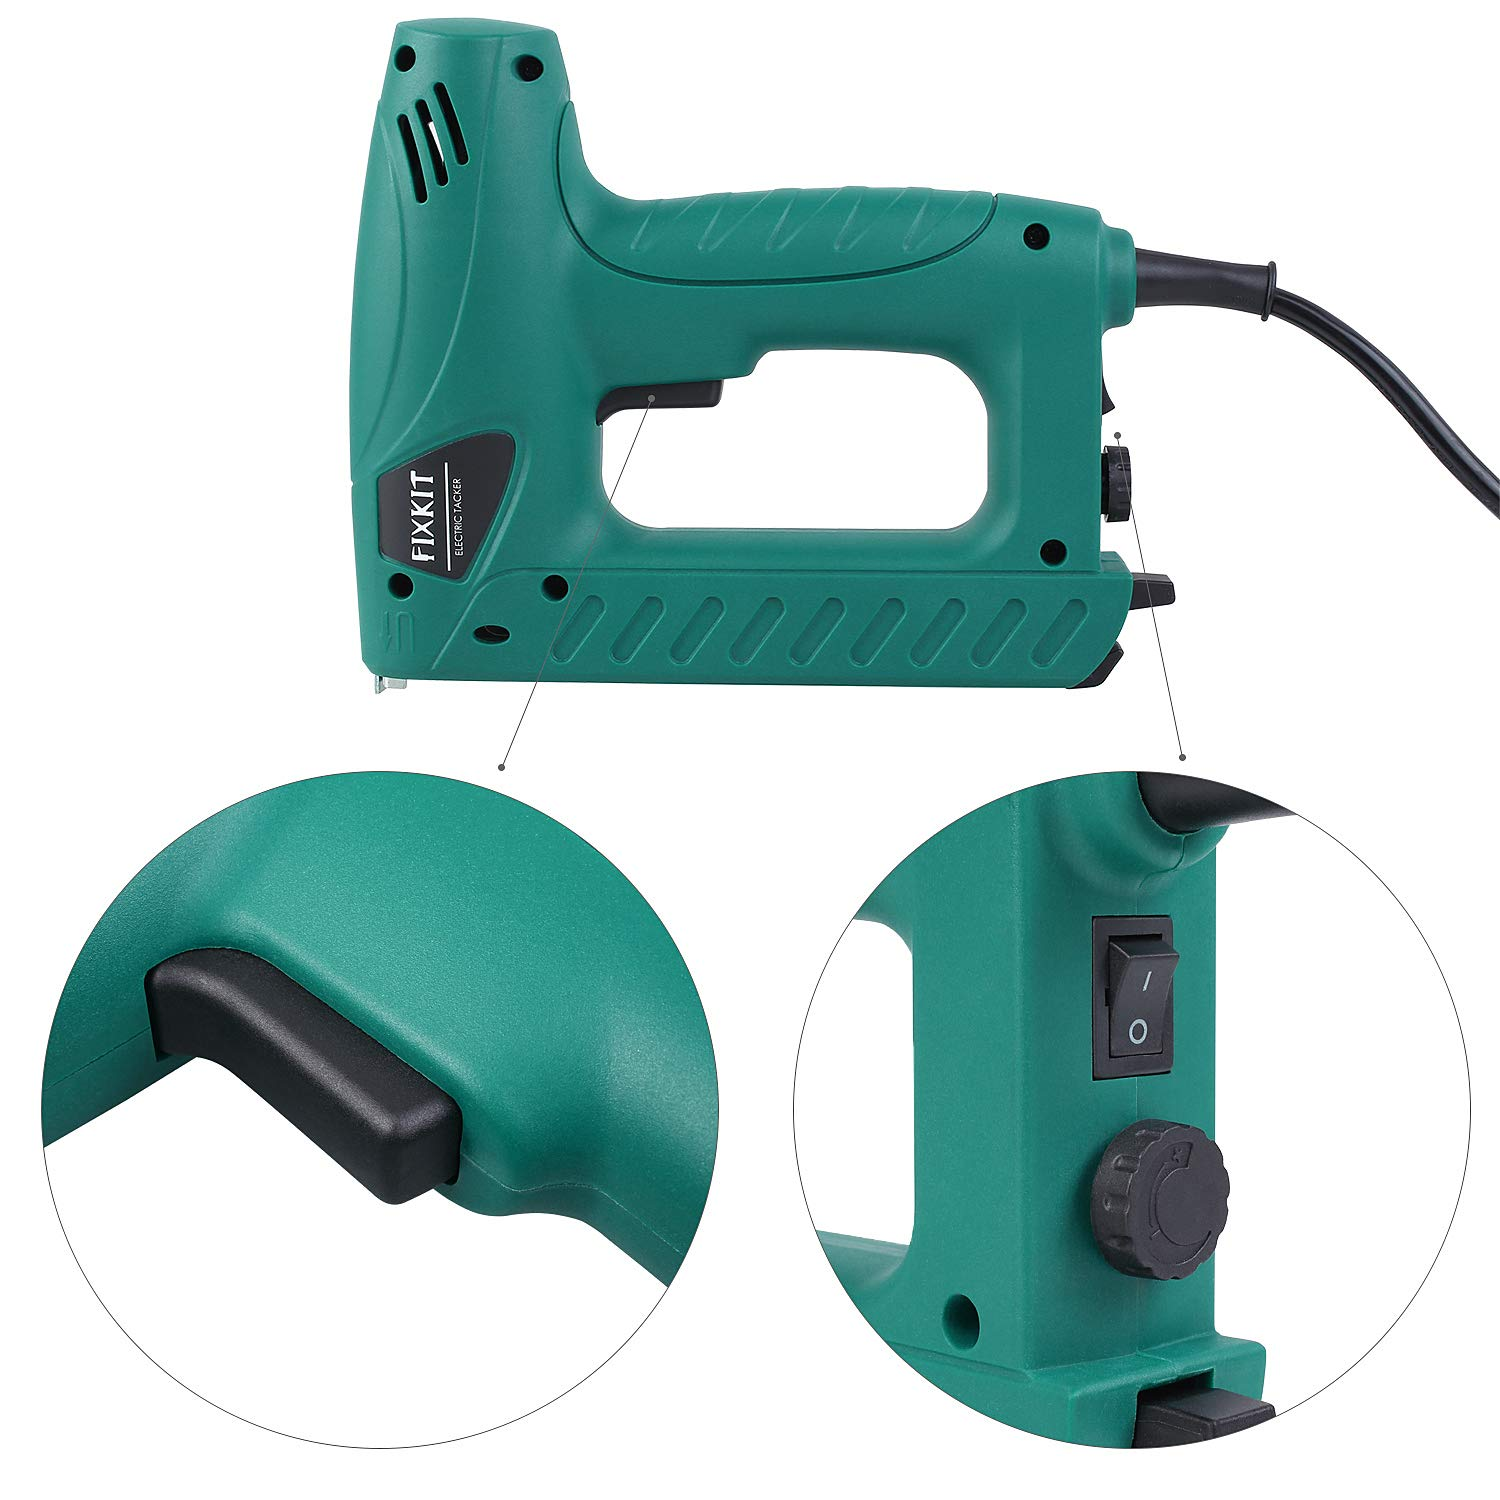 FIXKIT Electric Staple/Brad Nail Gun Hand Tacker Flooring Framing Nailers Kit, Suit For Upholstery, Fixing Material, Decoration, Carpentry, Furniture by FIXKIT (Image #4)